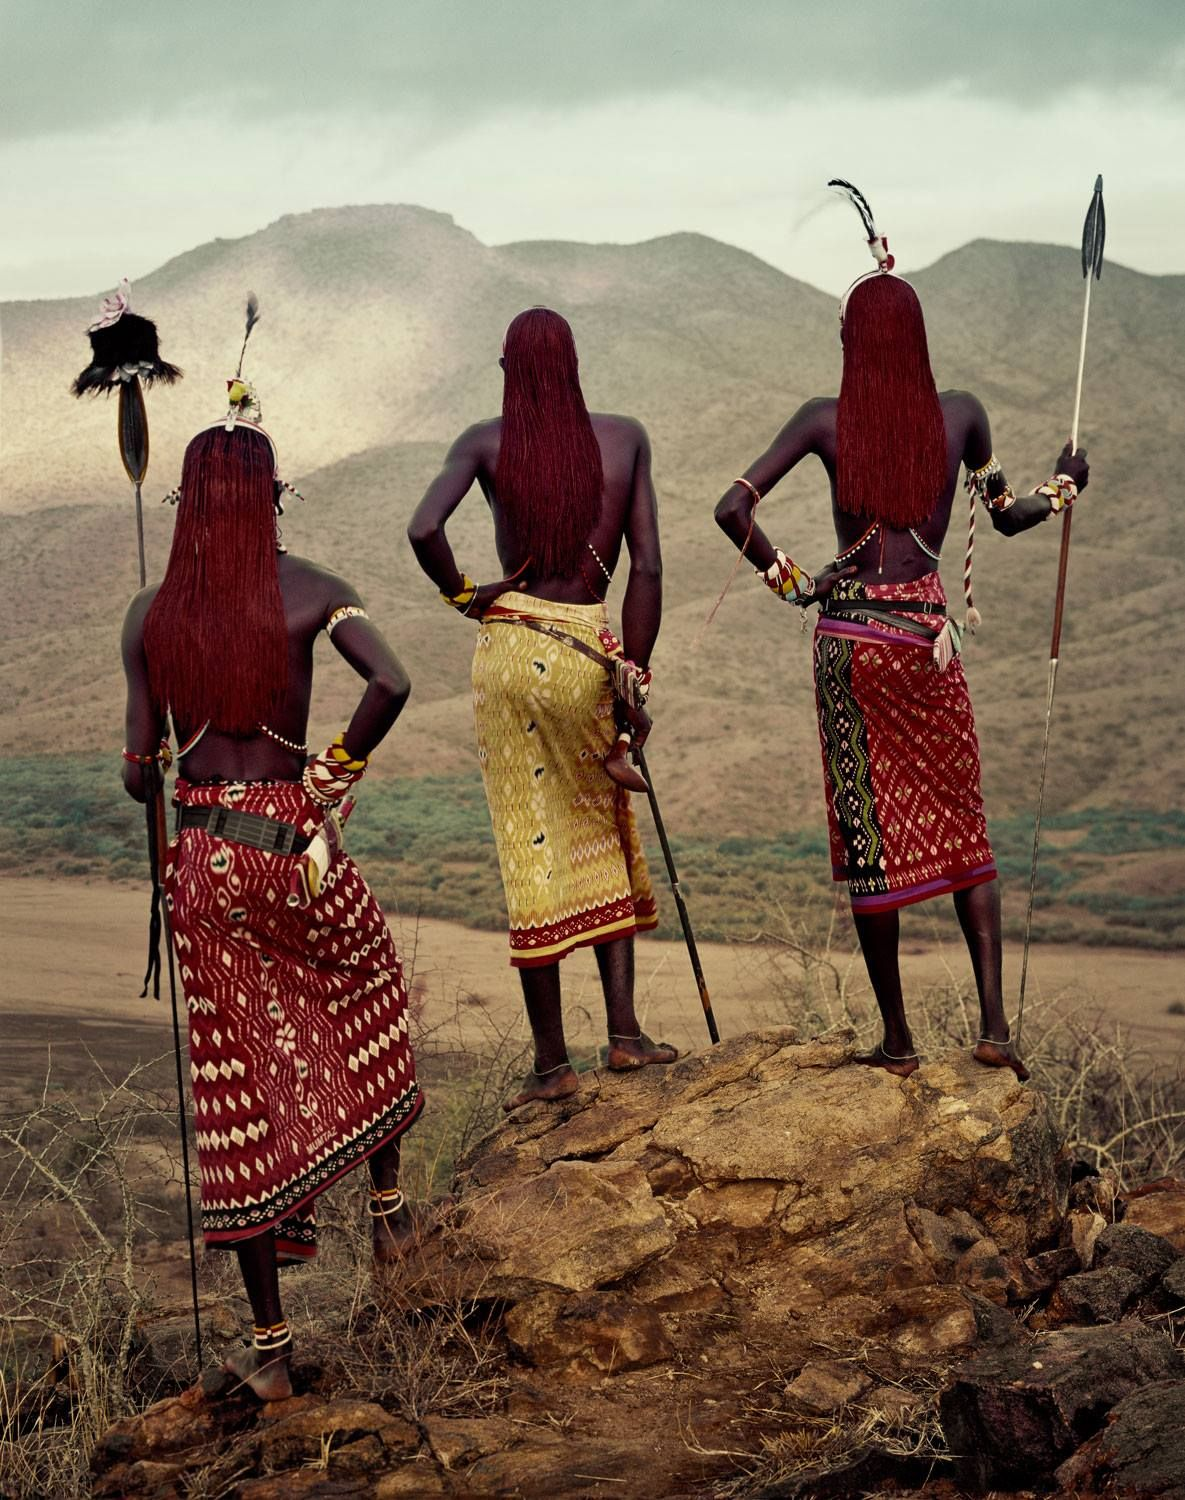 """ Samburu people, from the series Before they pass away by British photographer Jimmy Nelson "" Sorry if I reblog this too often, can't get enough of it. """